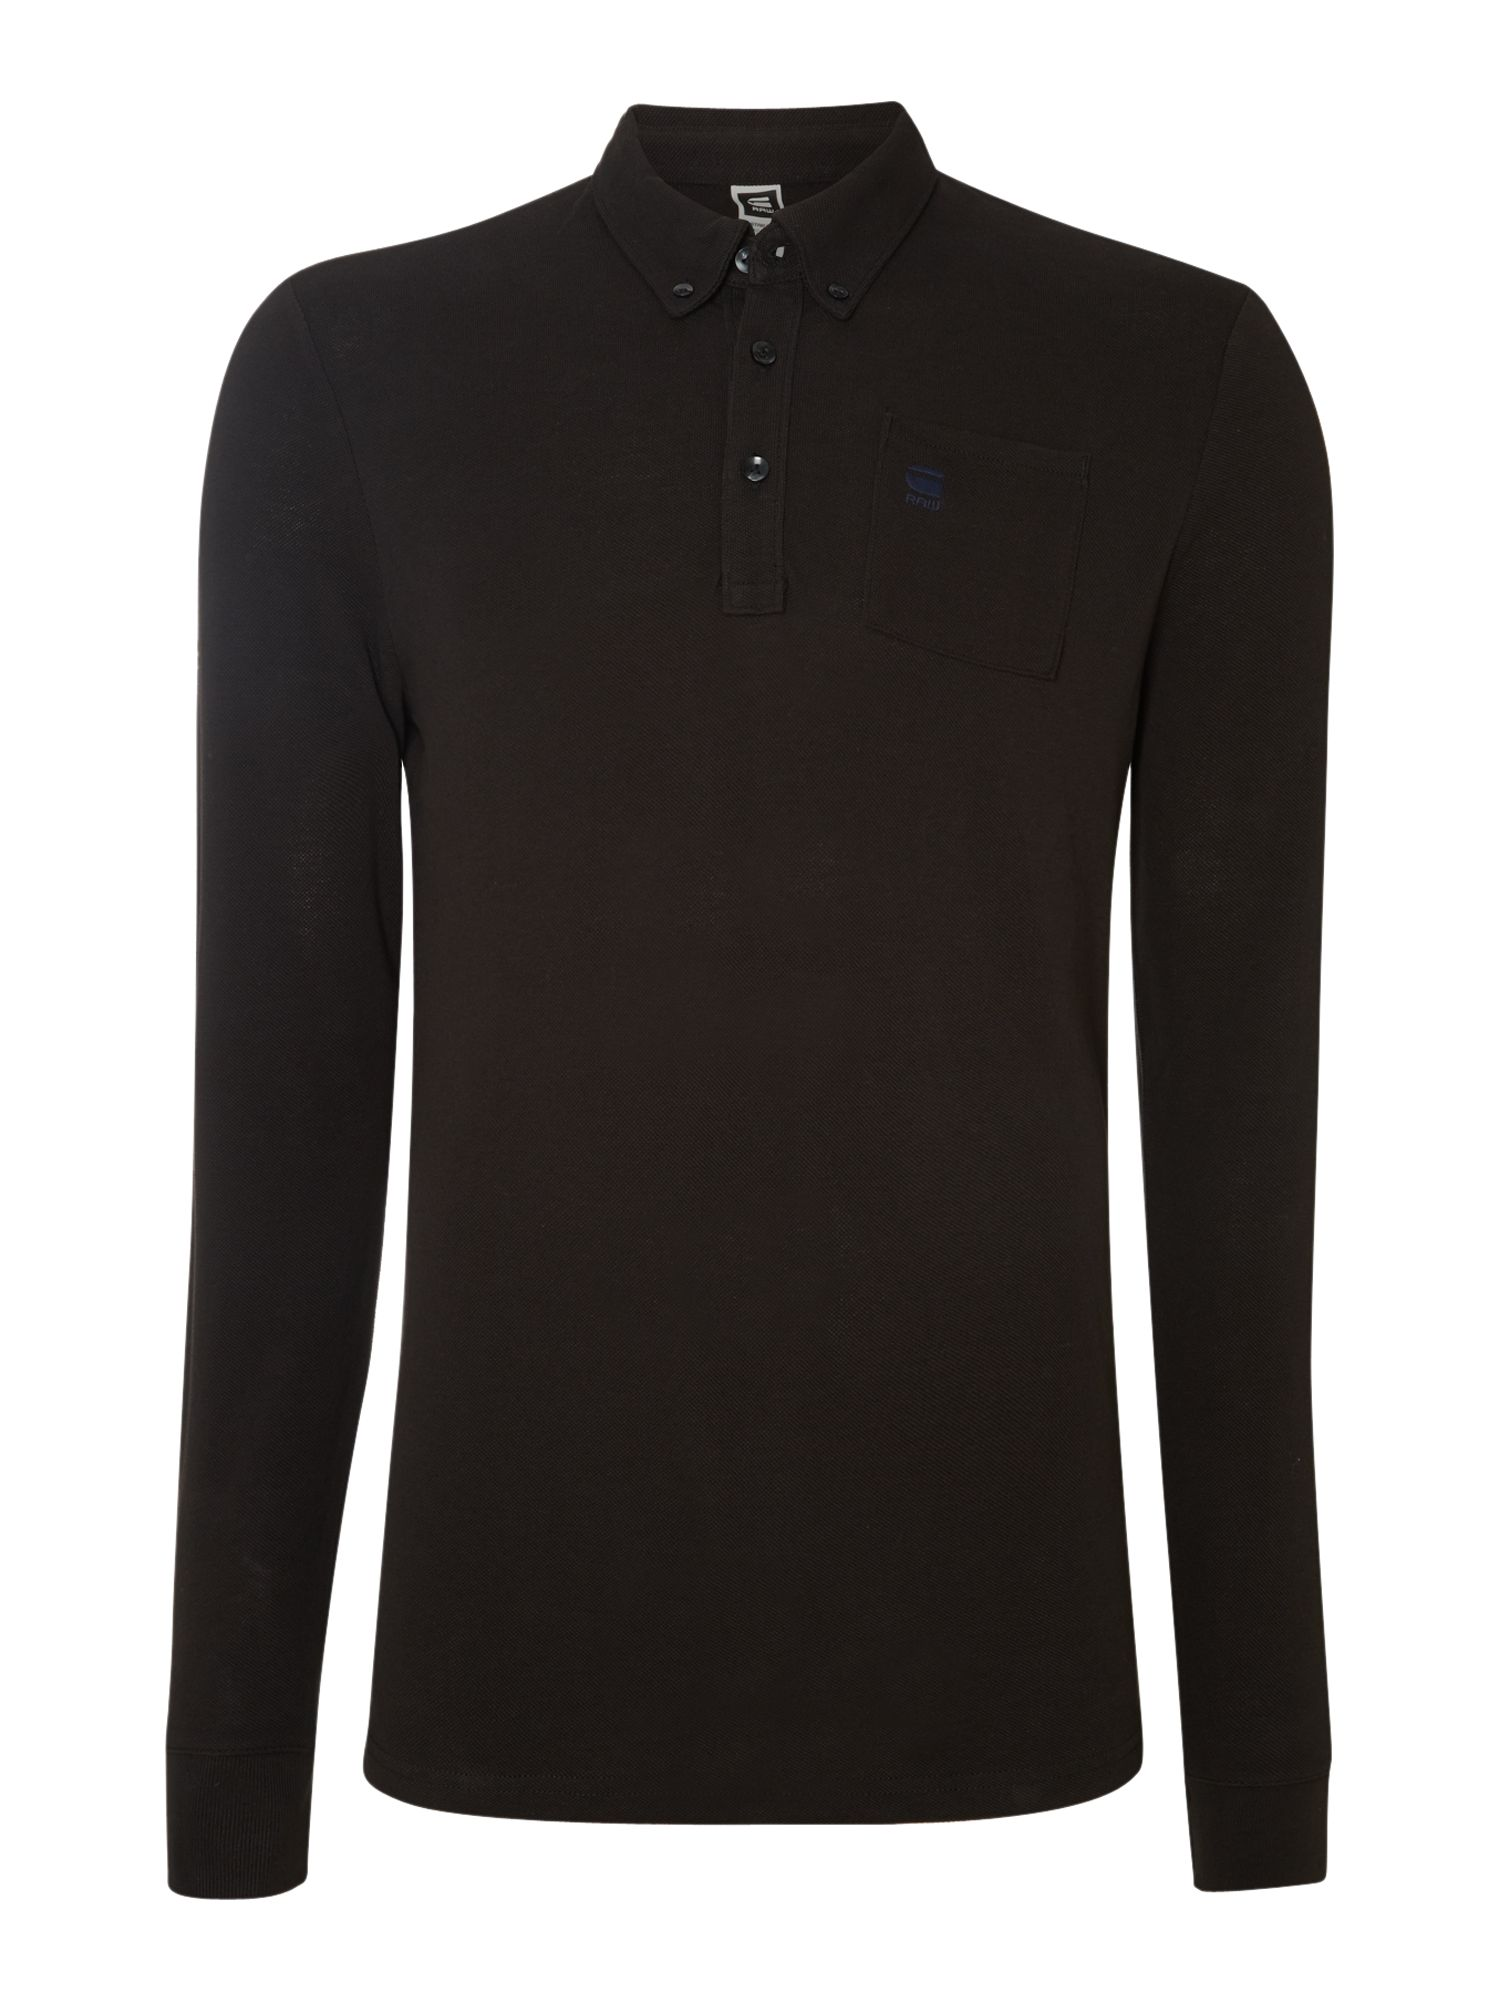 Long sleeve one pocket polo shirt